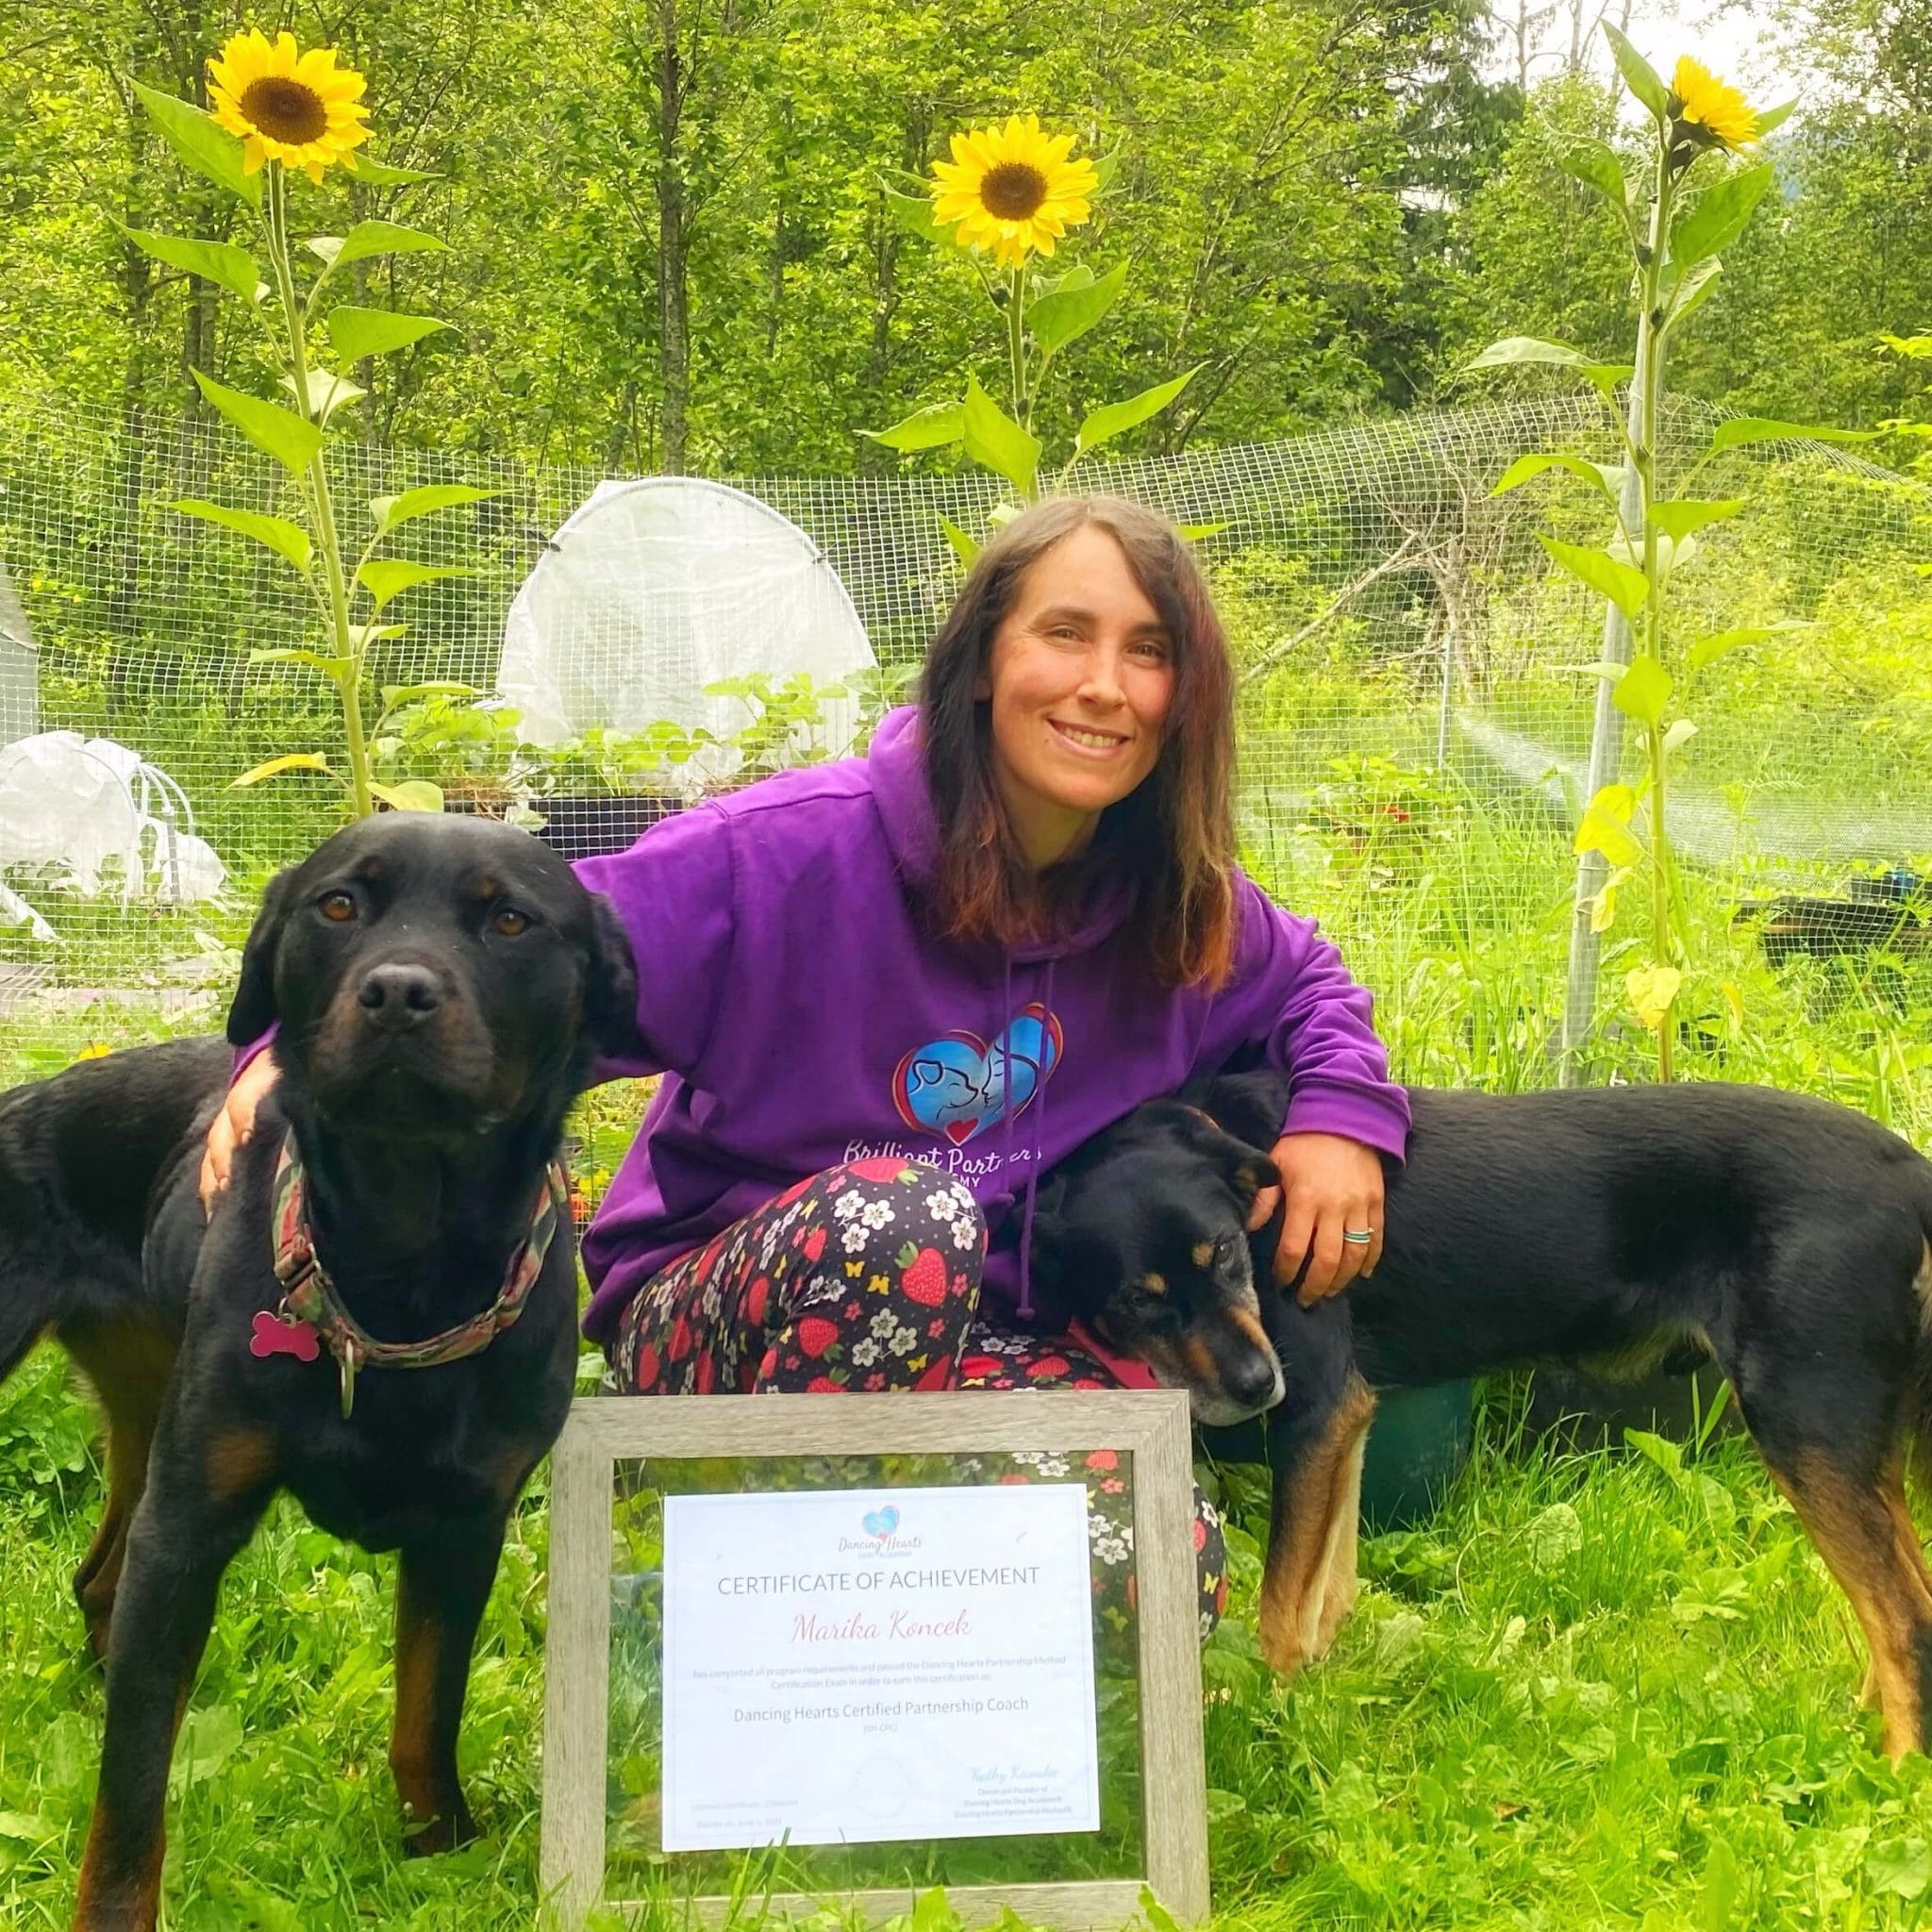 Coach Marika with her dogs in the garden